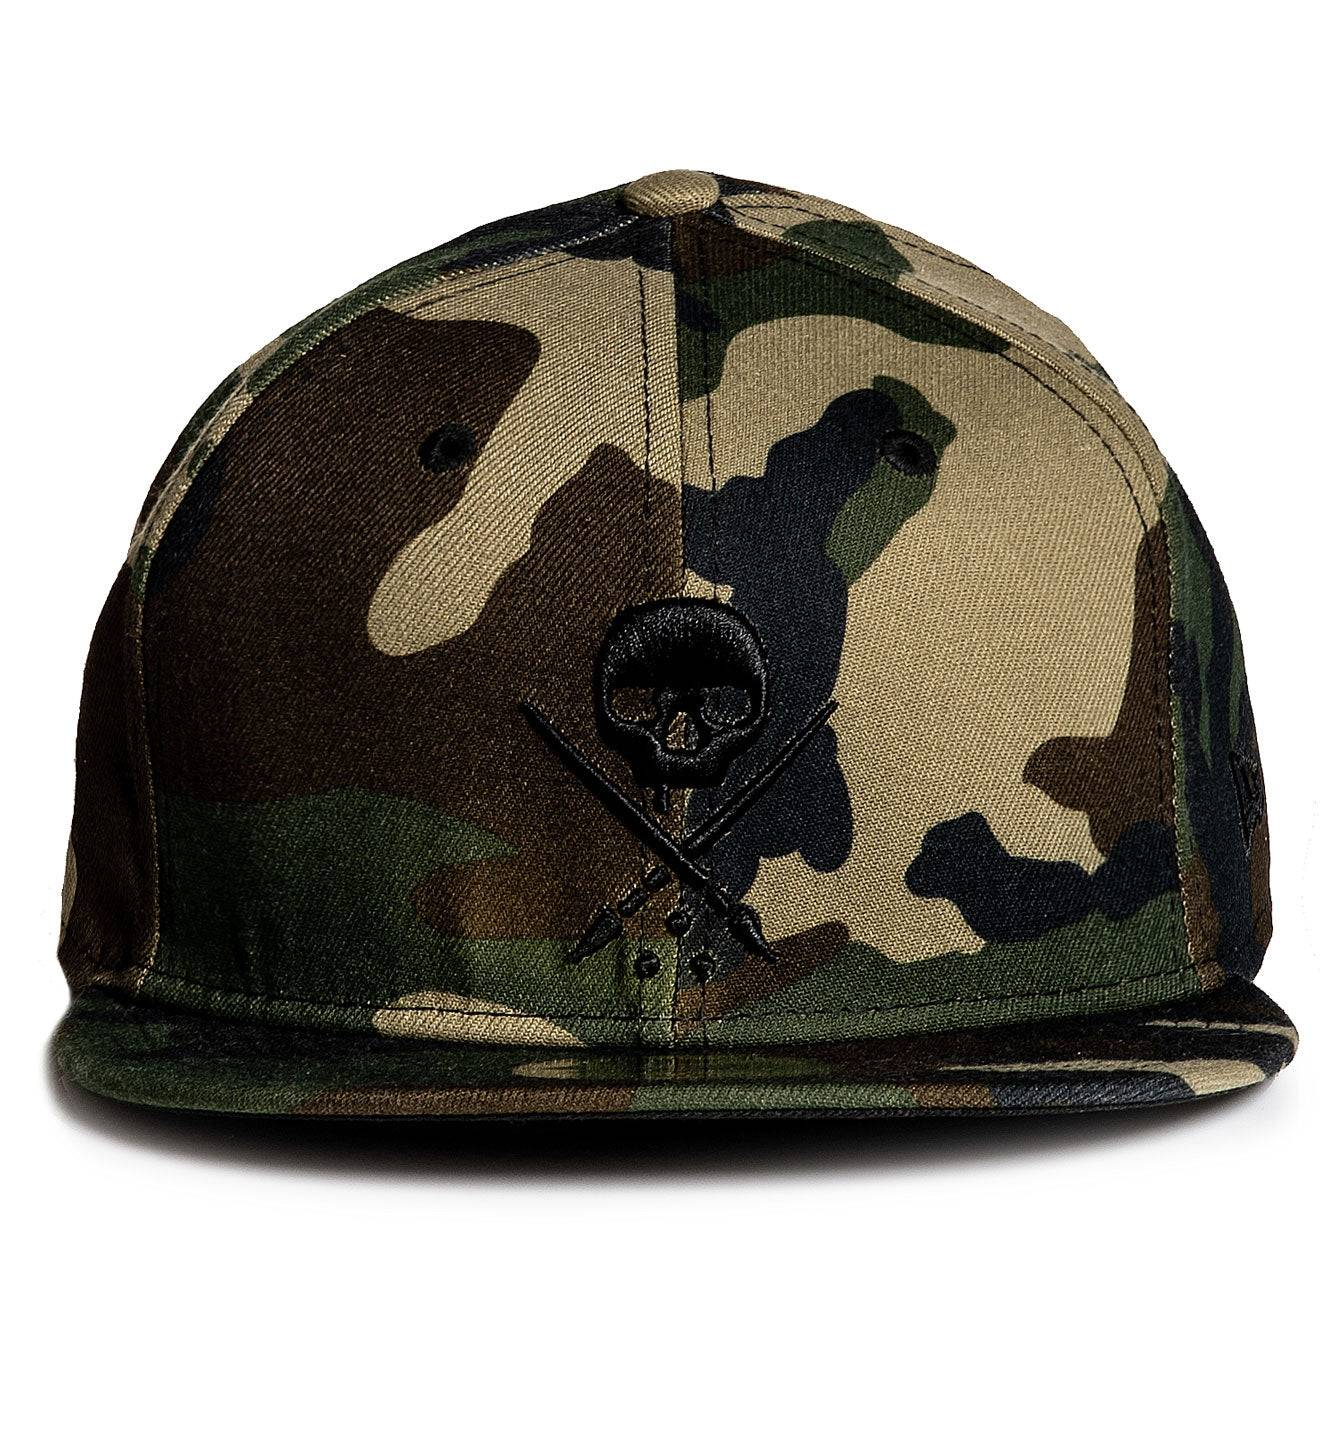 Mens Fitted Badge Stretched Camo, CAMO / 73/8